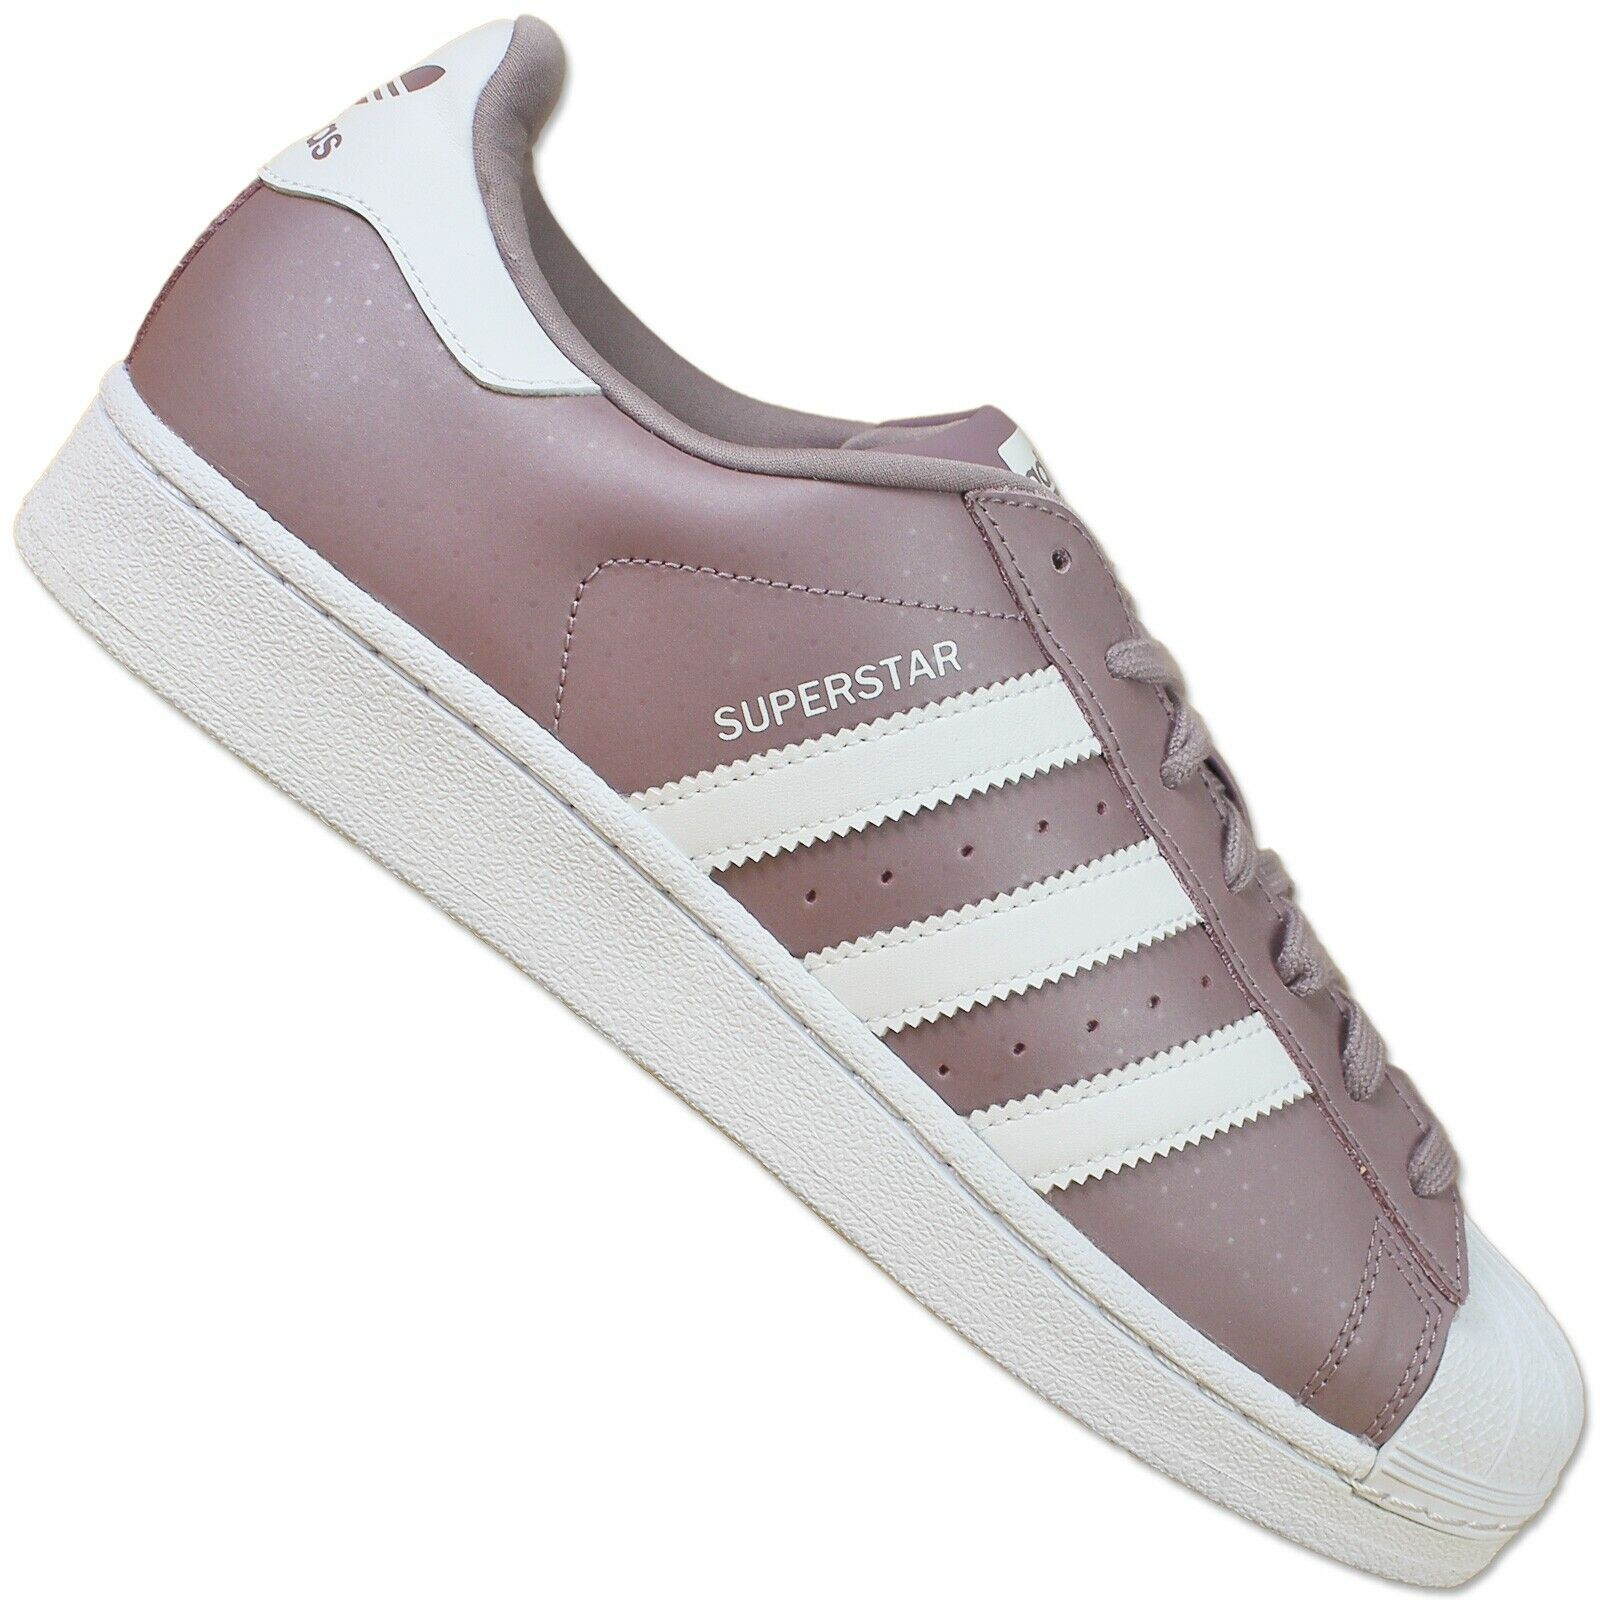 Adidas originals superstar II s75131 grey leather sneakers purple